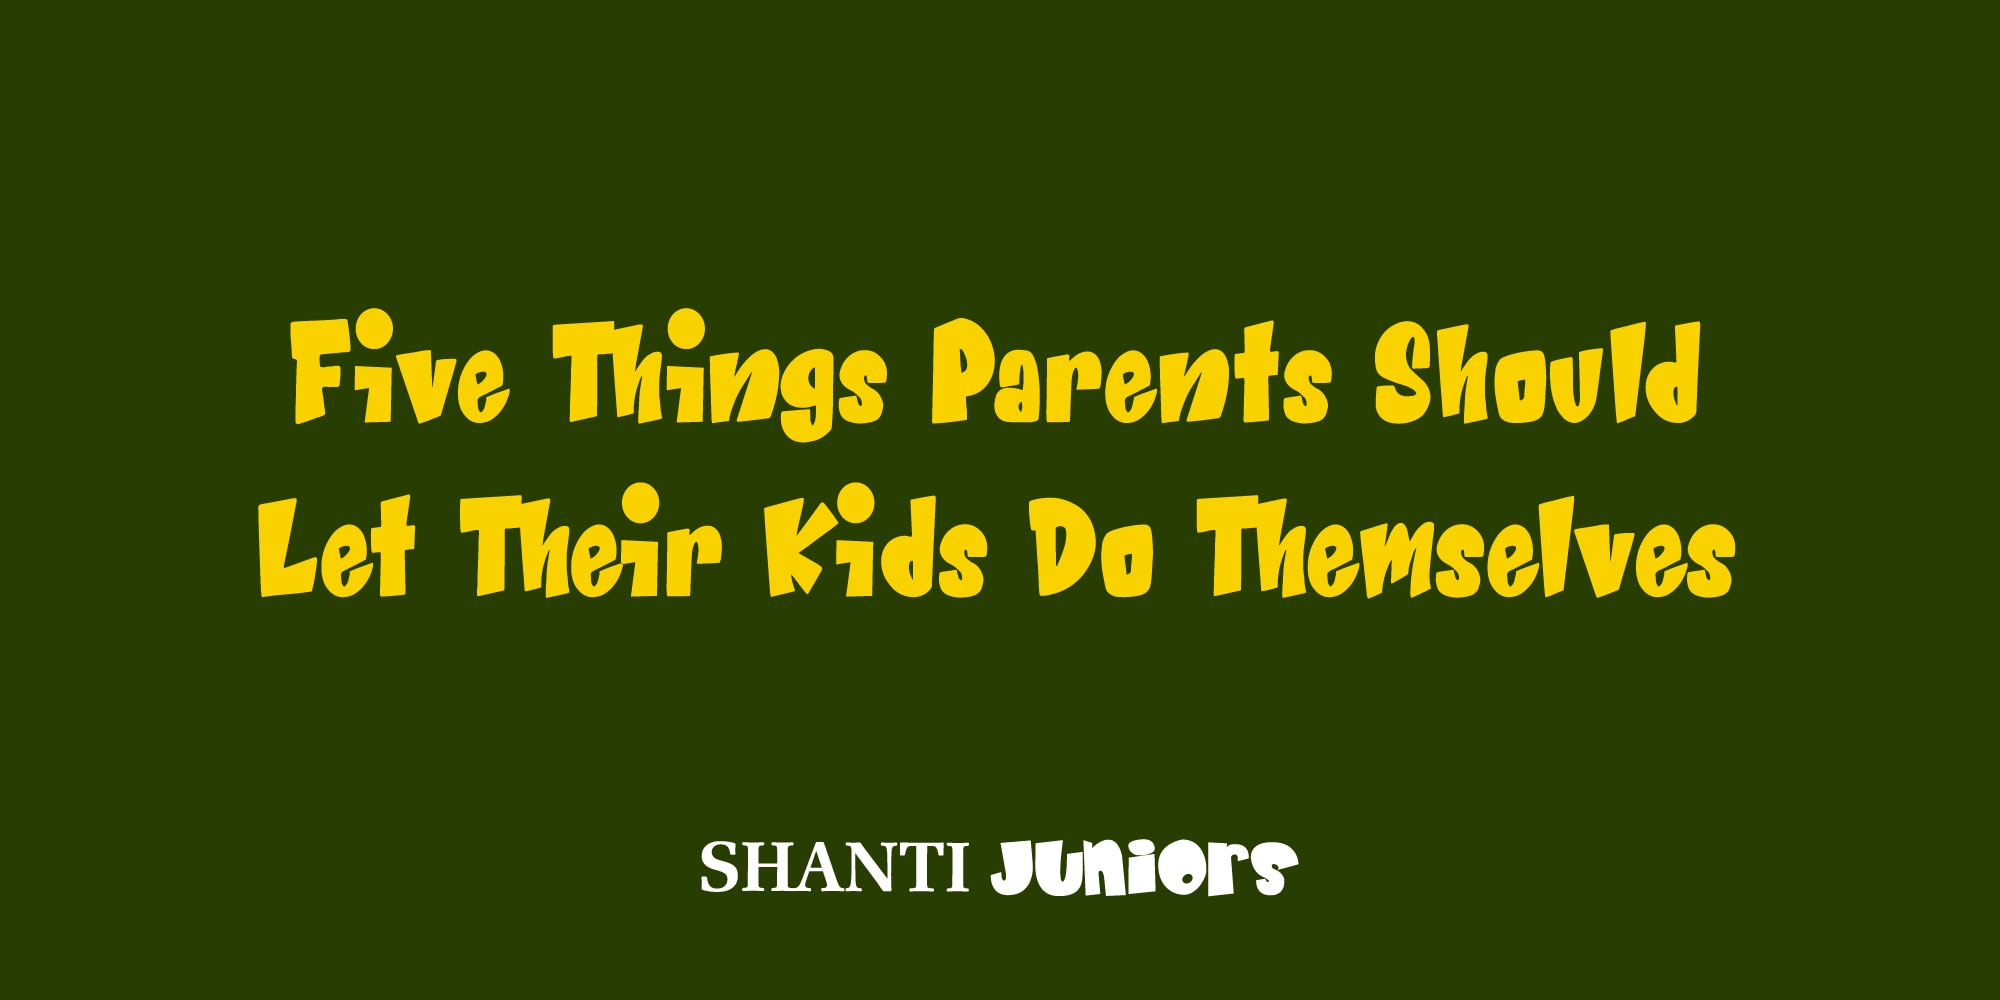 Five Things Parents Should Let Their Kids Do Themselves